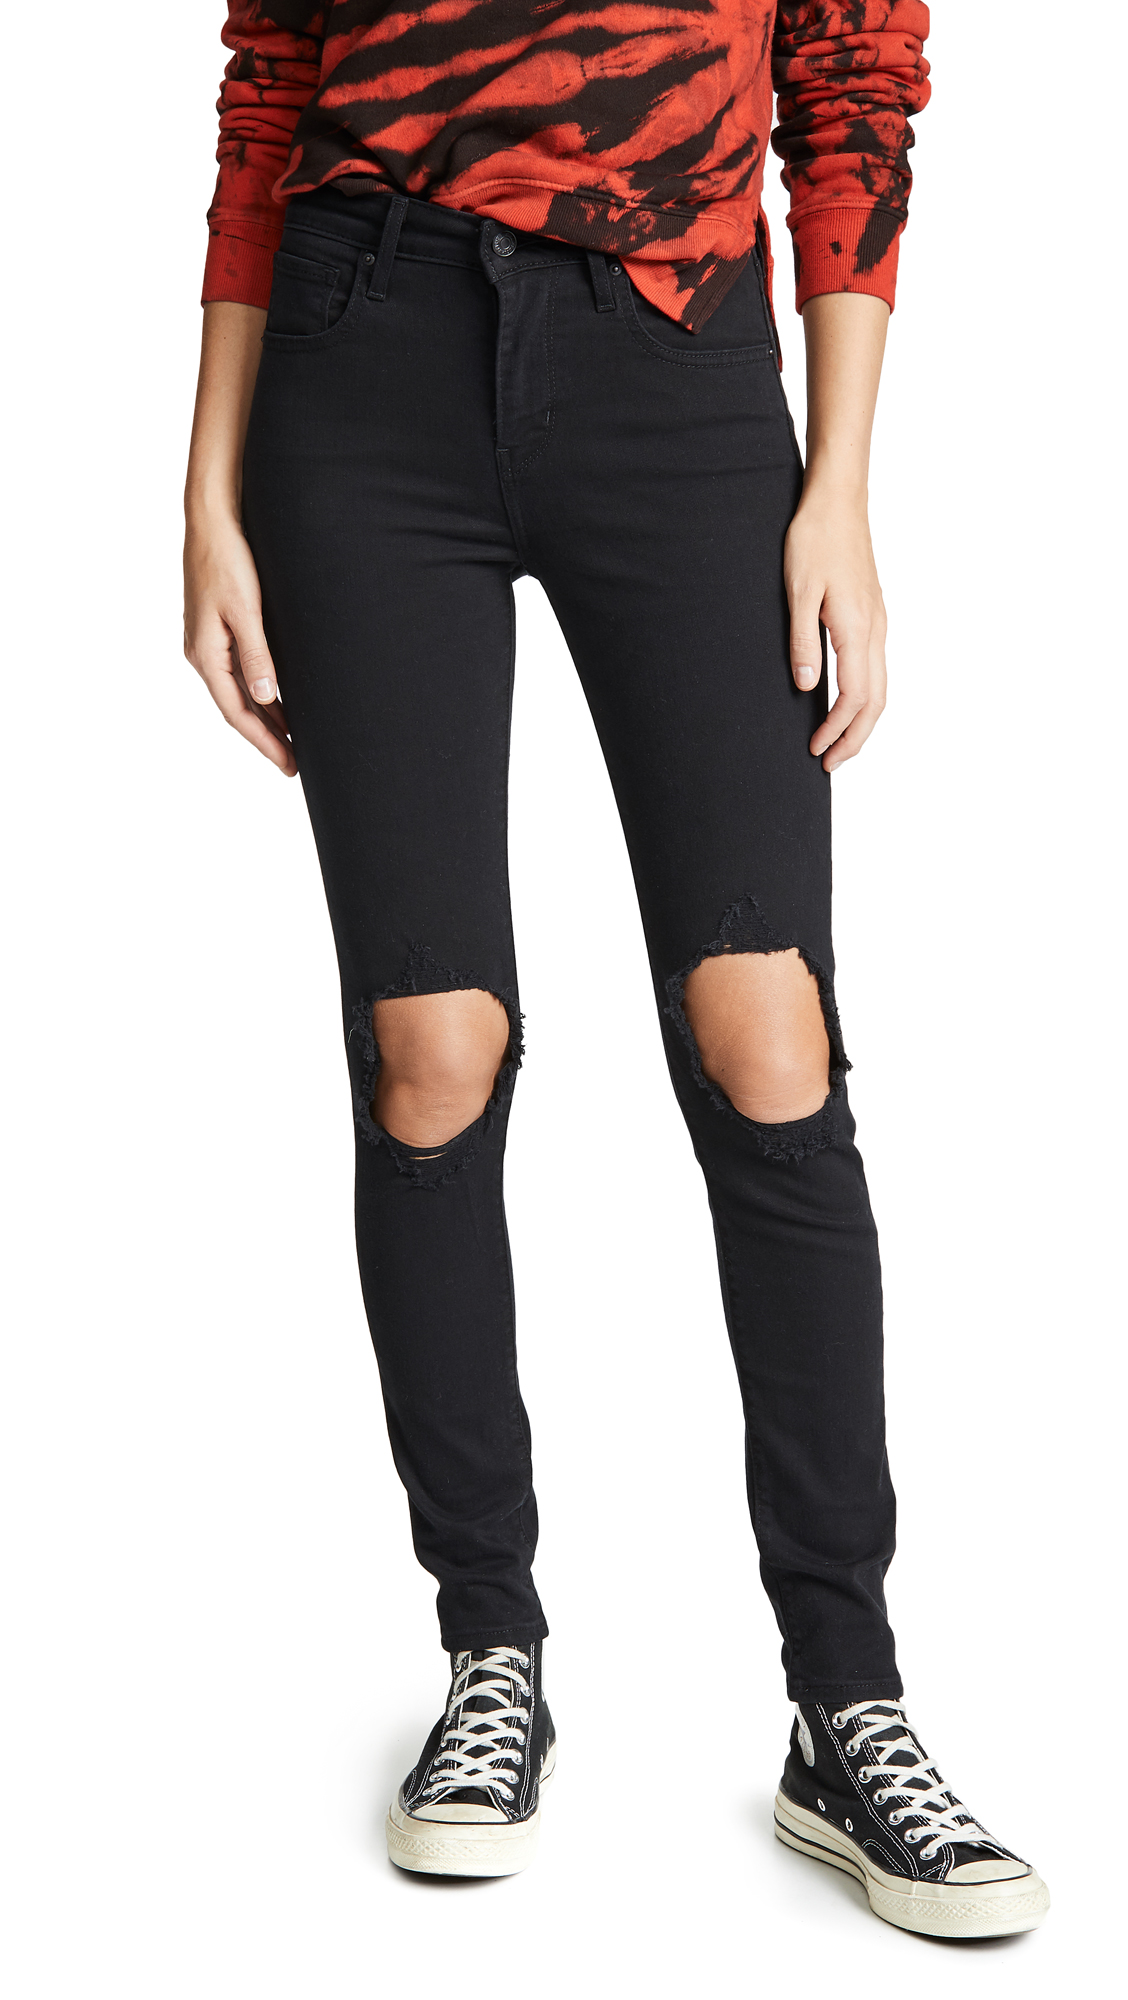 Levis 721 High Rise Skinny Jeans - Looker